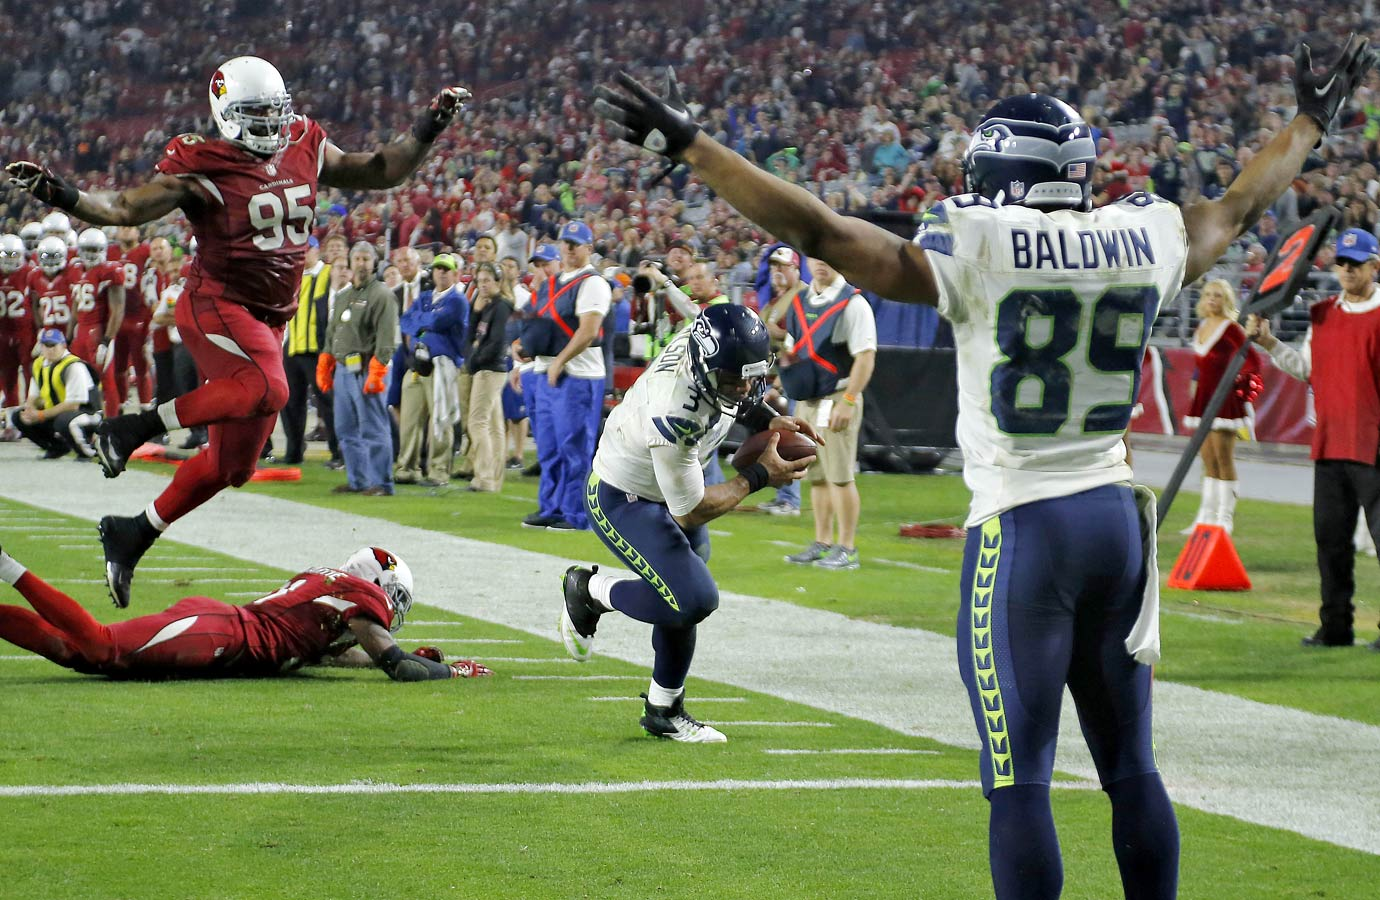 The Seahawks obliterated the Arizona Cardinals in Week 16, as Wilson and Lynch combined for five touchdowns and Lynch ran for 113 yards on only 10 carries. Arizona threw the ball 44 times but couldn't get into the endzone.